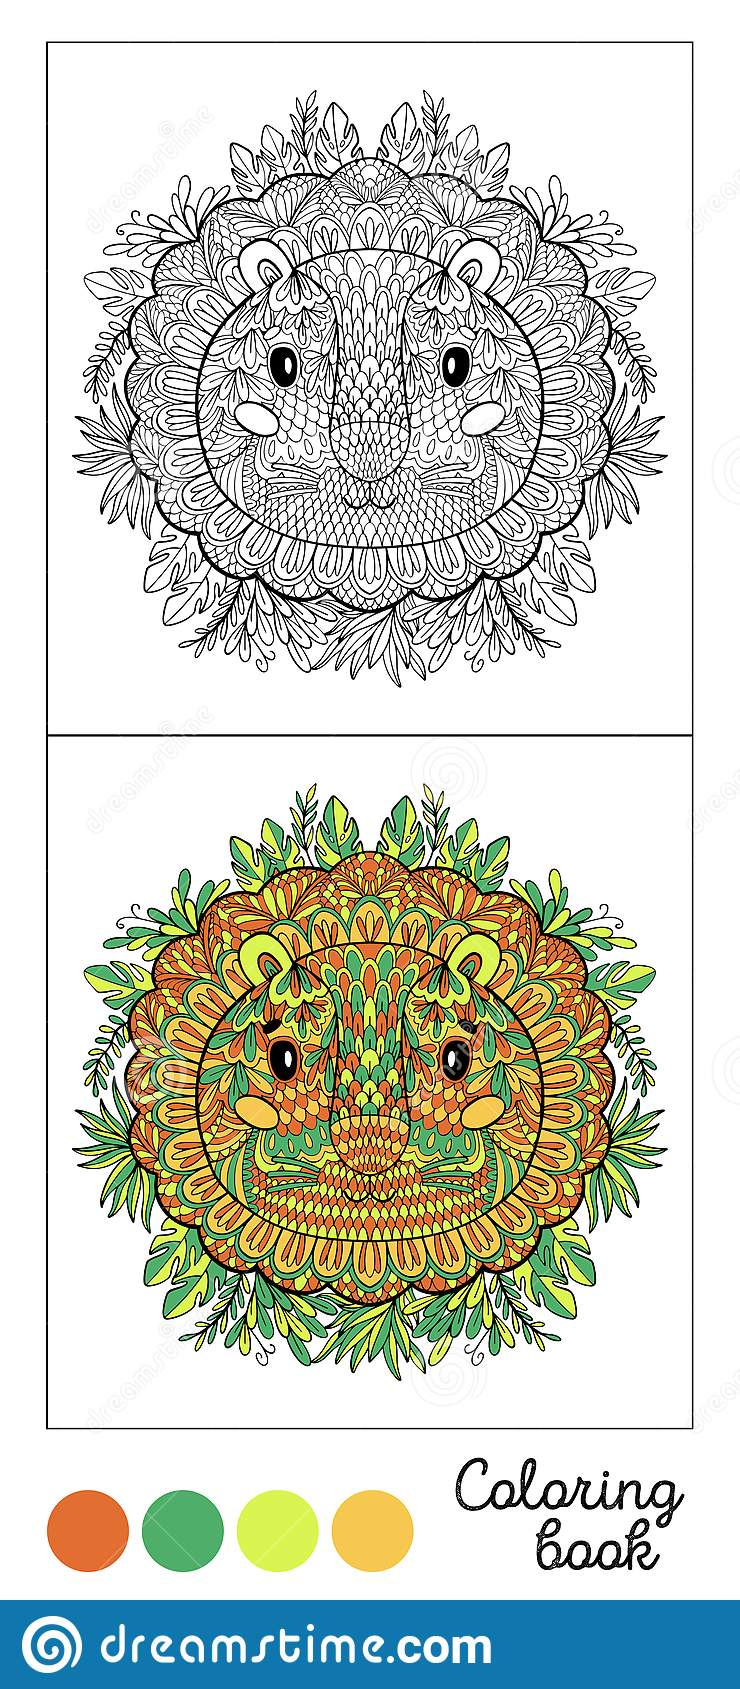 Lion Outline Photos Free Royalty Free Stock Photos From Dreamstime The style is quite minimalist with low detail but a lot of beauty and balance. https www dreamstime com coloring book lion page game color images outline black child adults antistress vector illustration image156684720